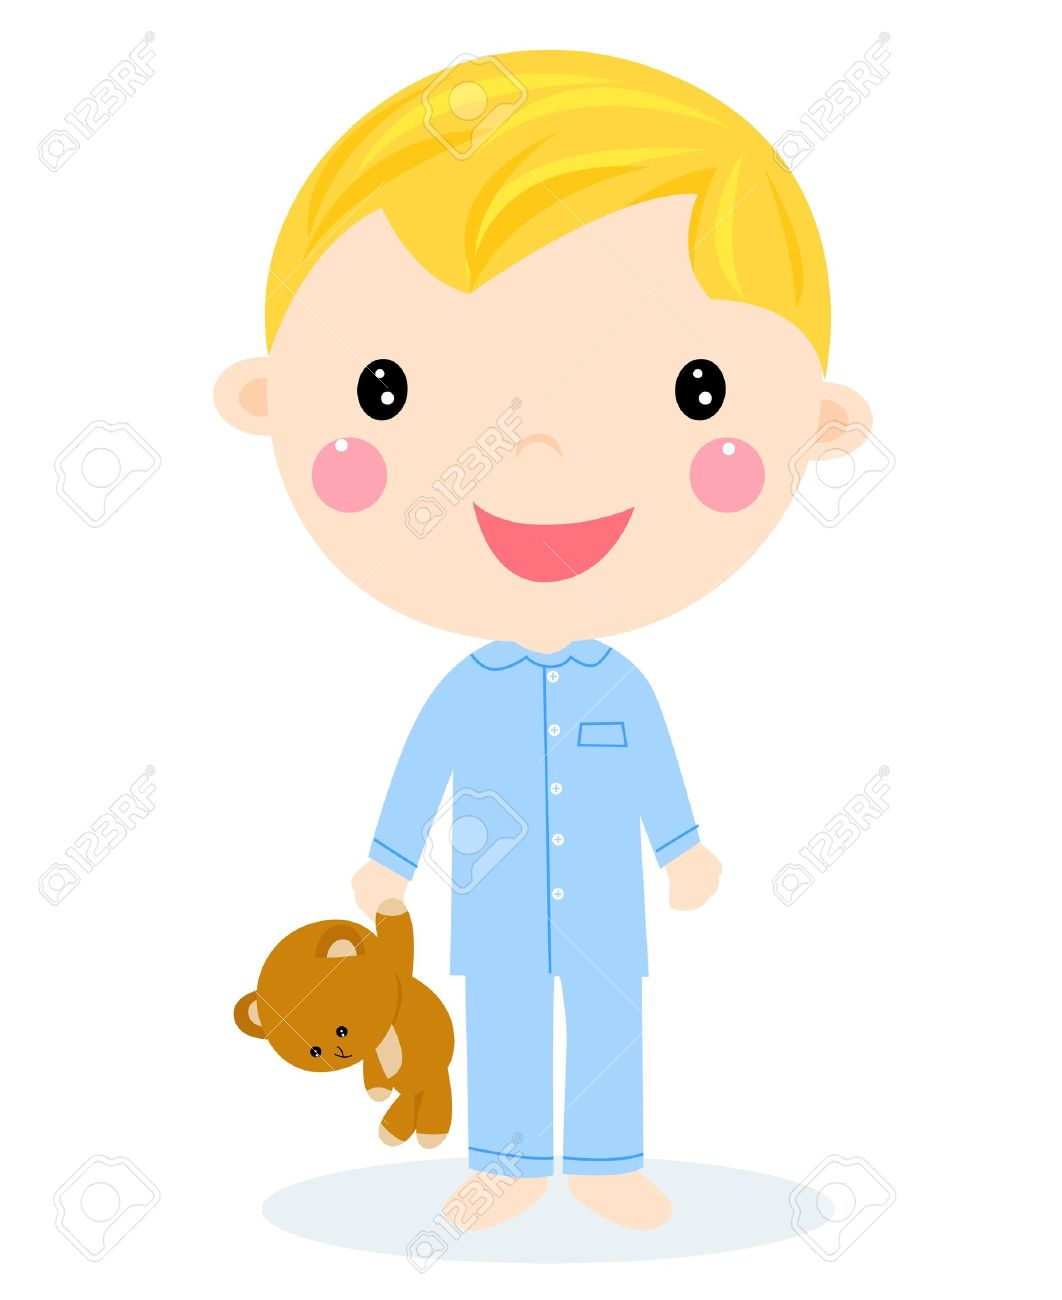 Baby in pjs clipart picture royalty free Christmas Pajamas Cliparts | Free download best Christmas Pajamas ... picture royalty free